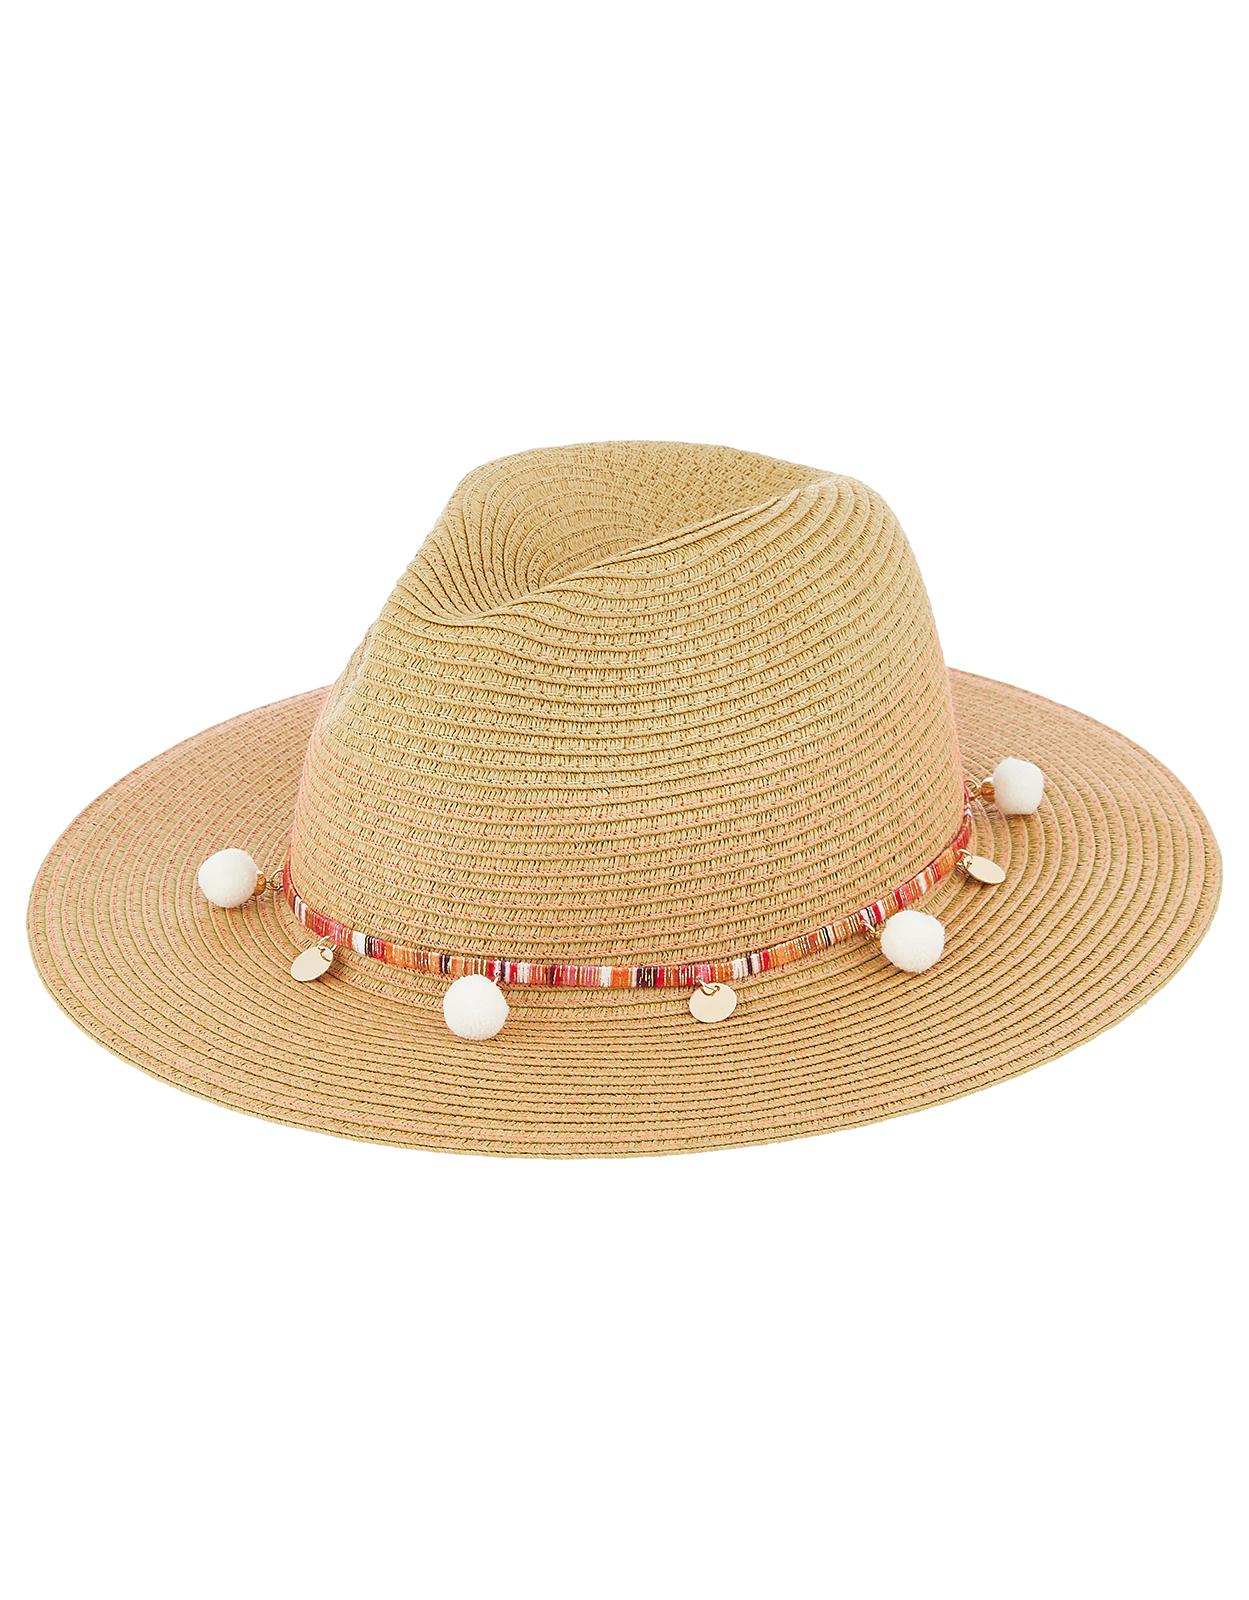 7da46940524f2 Accessorize Neon Stitch Braid Fedora Hat in Natural - Lyst